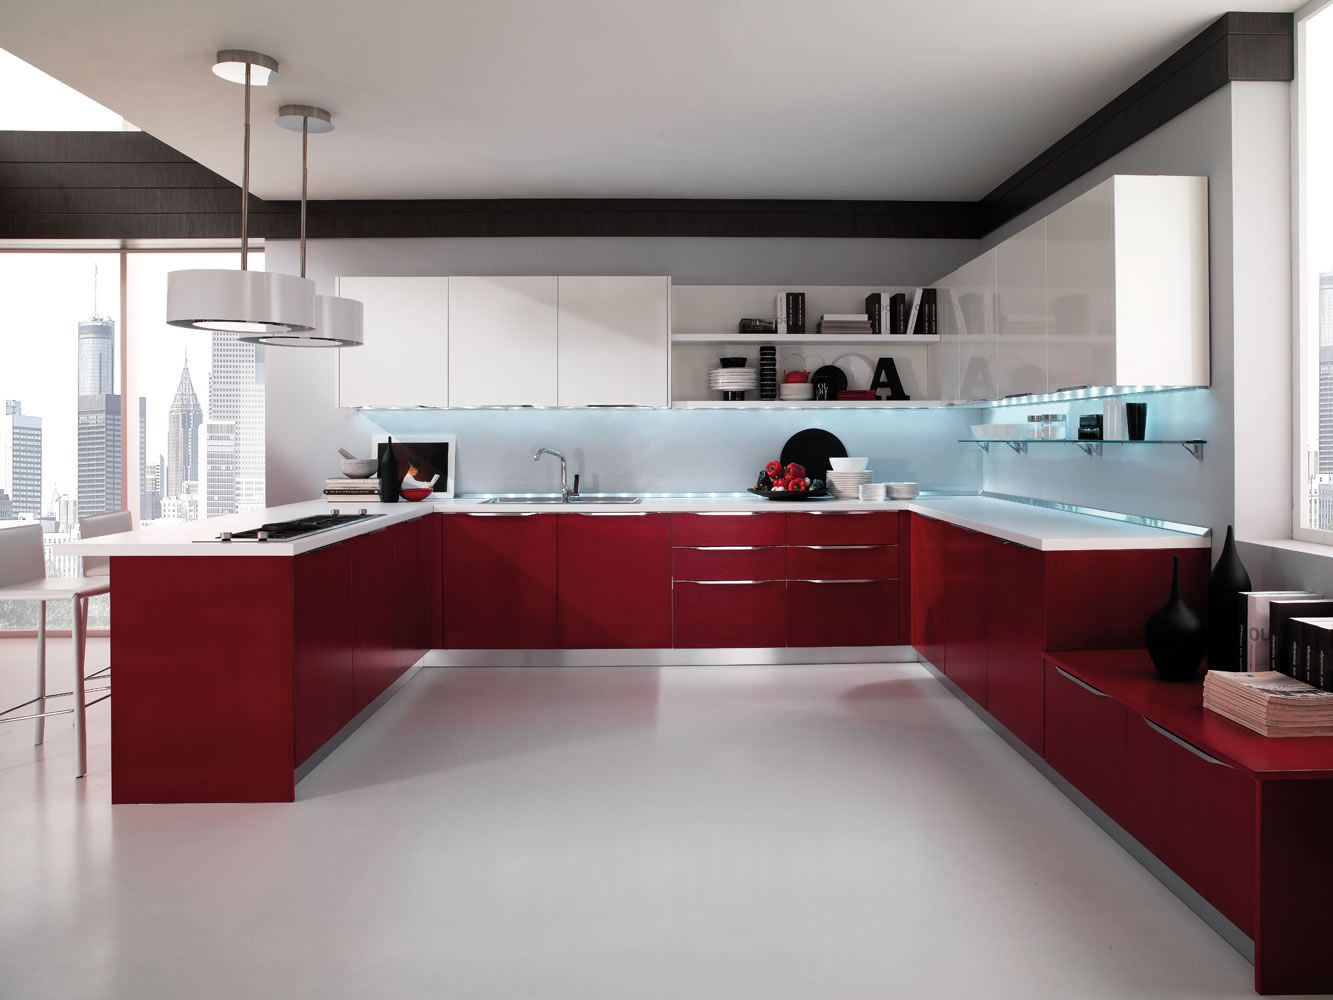 70 High Gloss Kitchen Cabinets Kitchen Island Countertop Ideas Check More At Http W Red And White Kitchen Cabinets Red Kitchen Cabinets High Gloss Kitchen